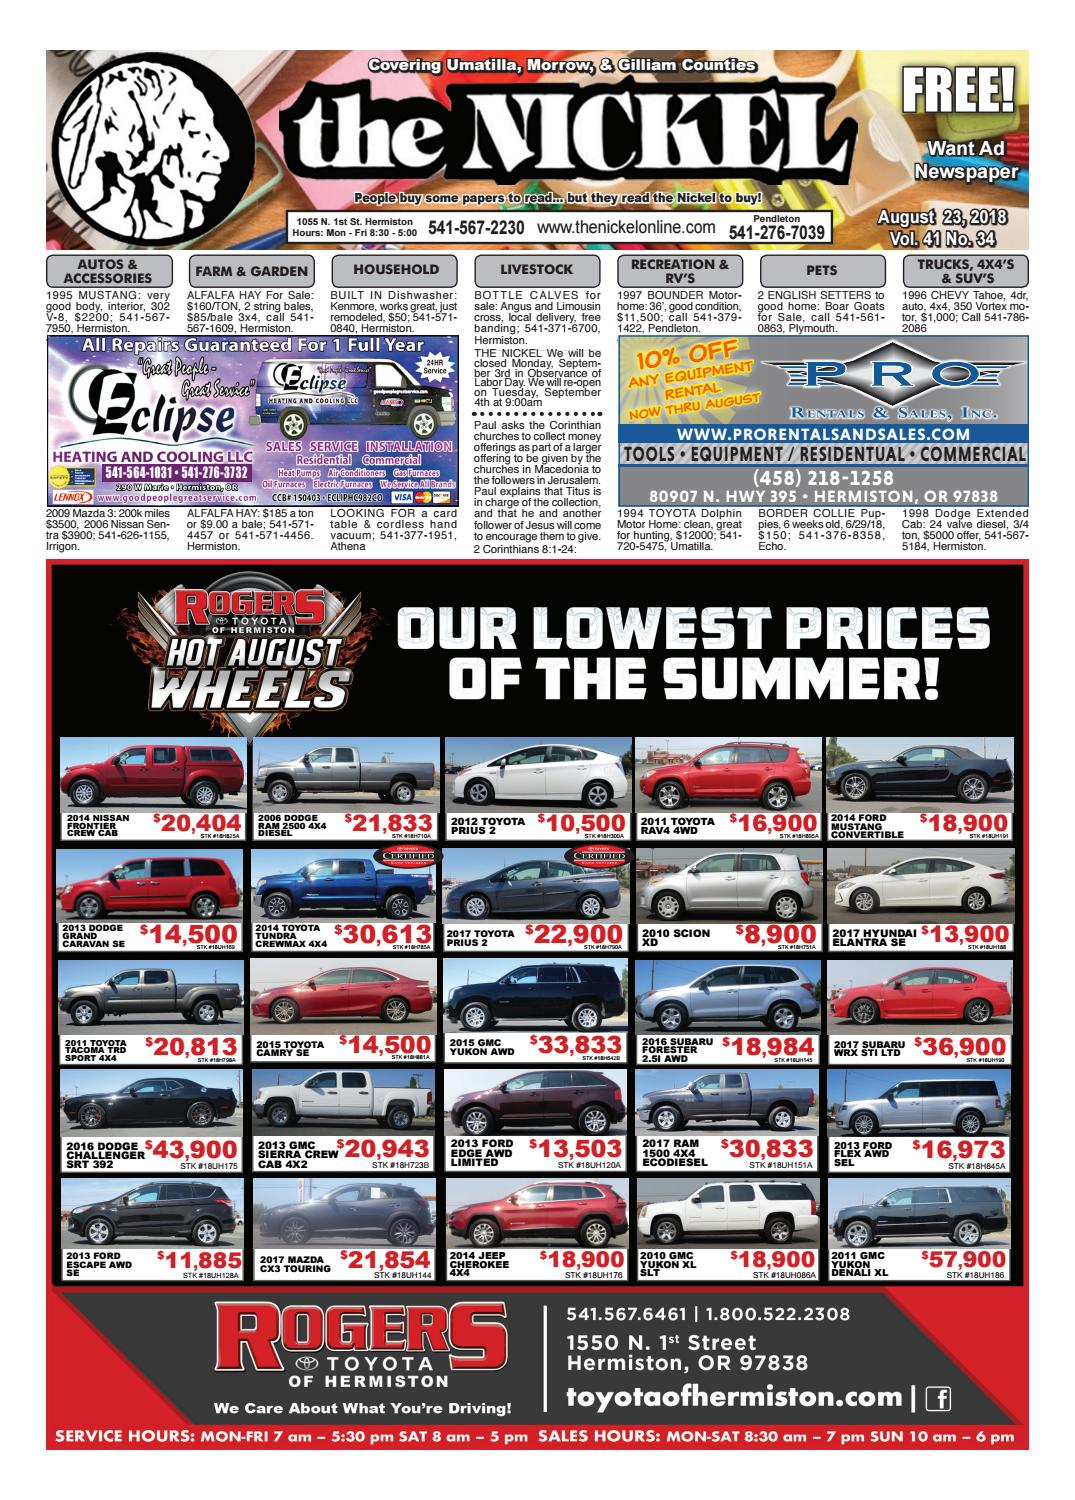 8.23.18 Issue by Hermiston Nickel - issuu on